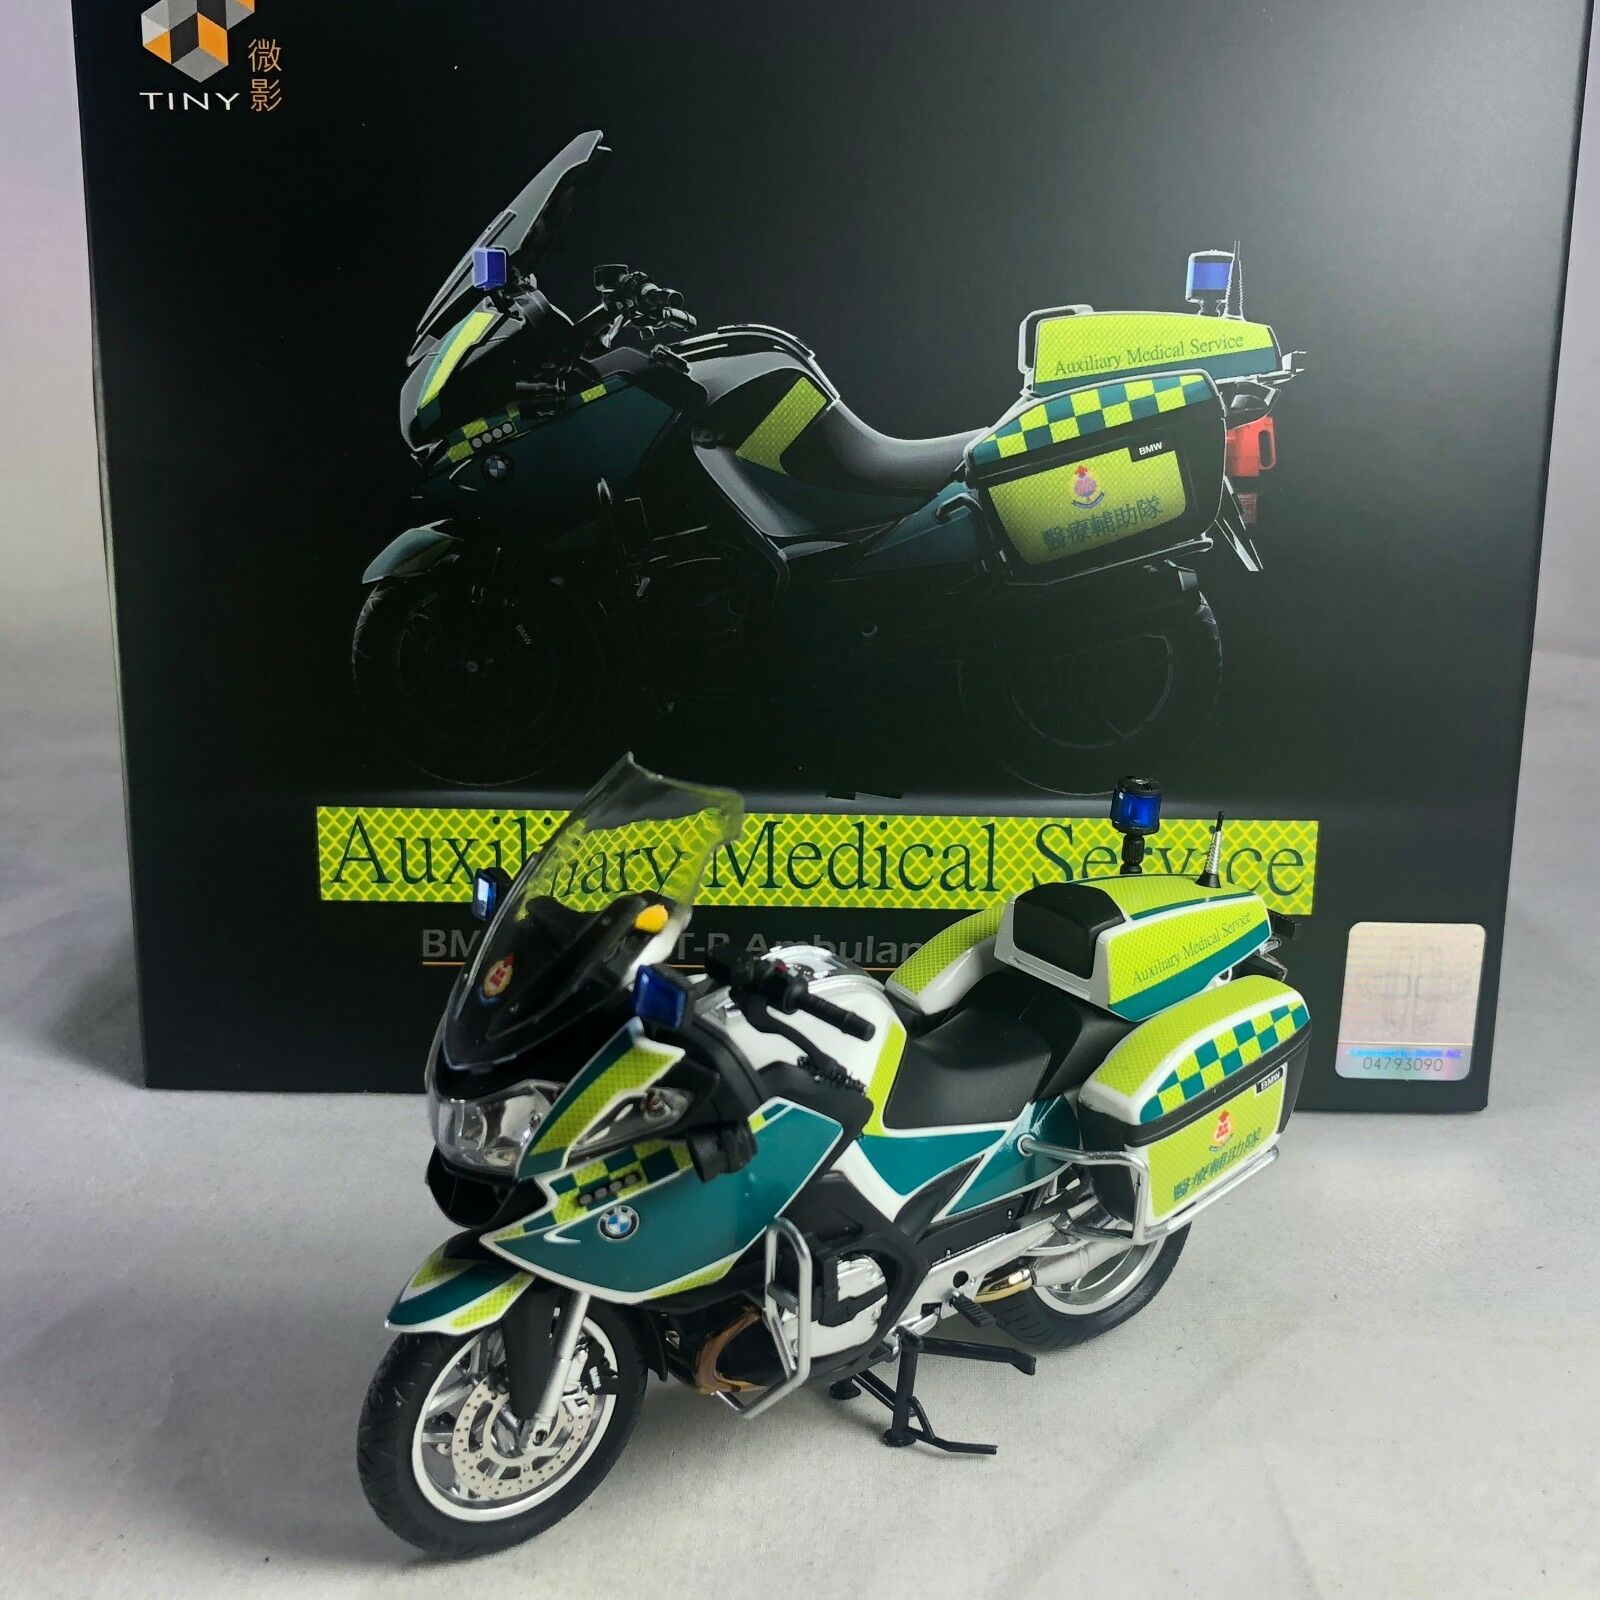 1 18 minuscules BMW moto  R900RT-P AMS Medical Service Ambulance ATC18014 Vélo  promotions discount